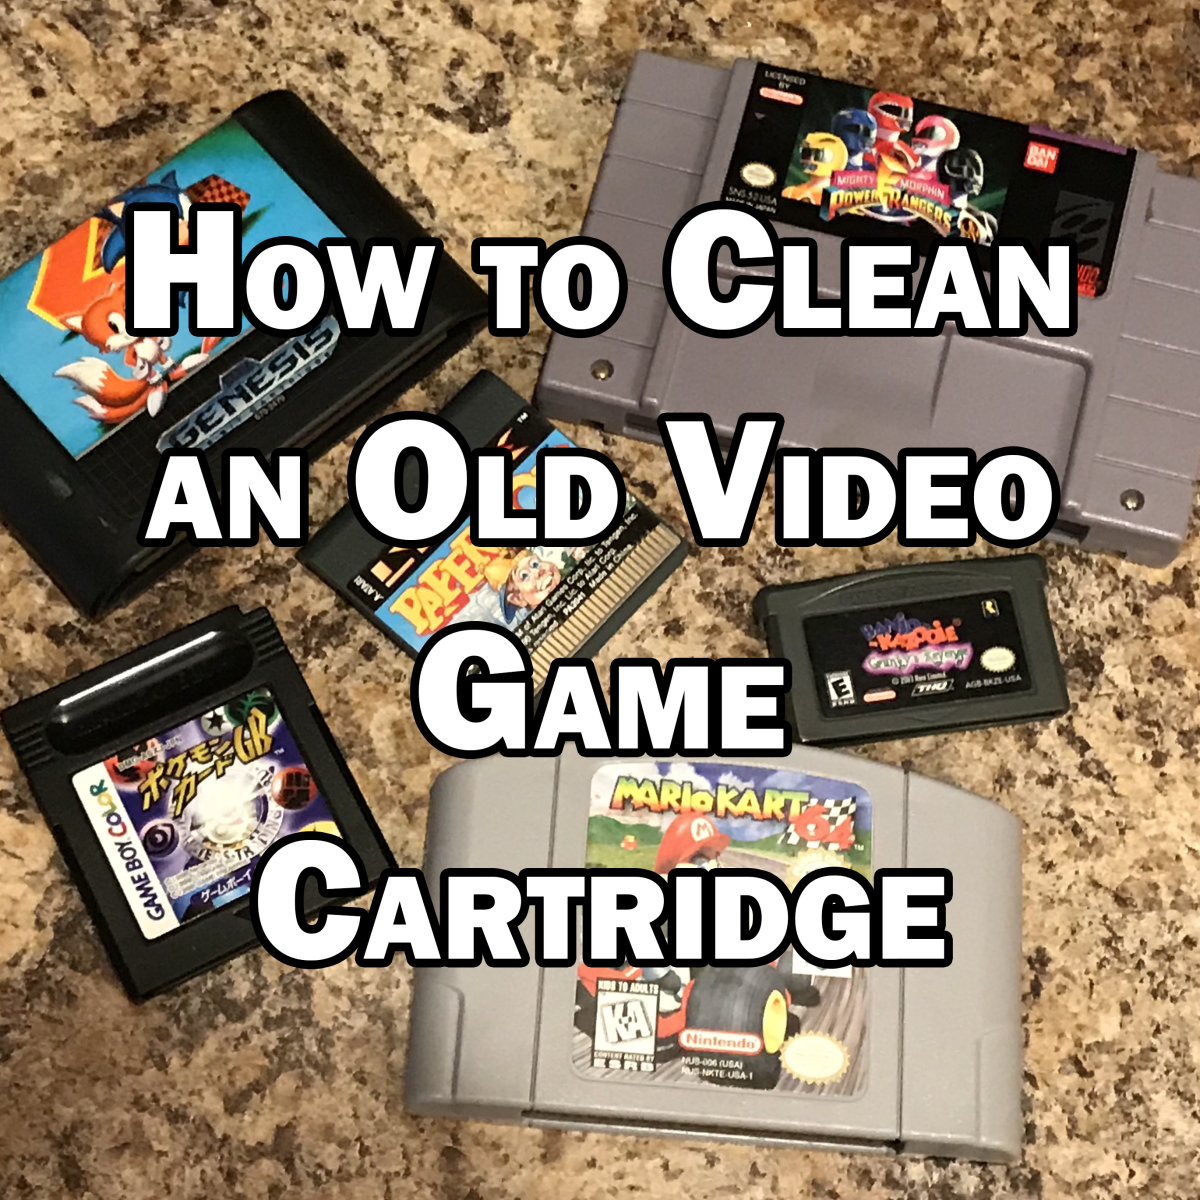 How to Clean an Old Video Game Cart.